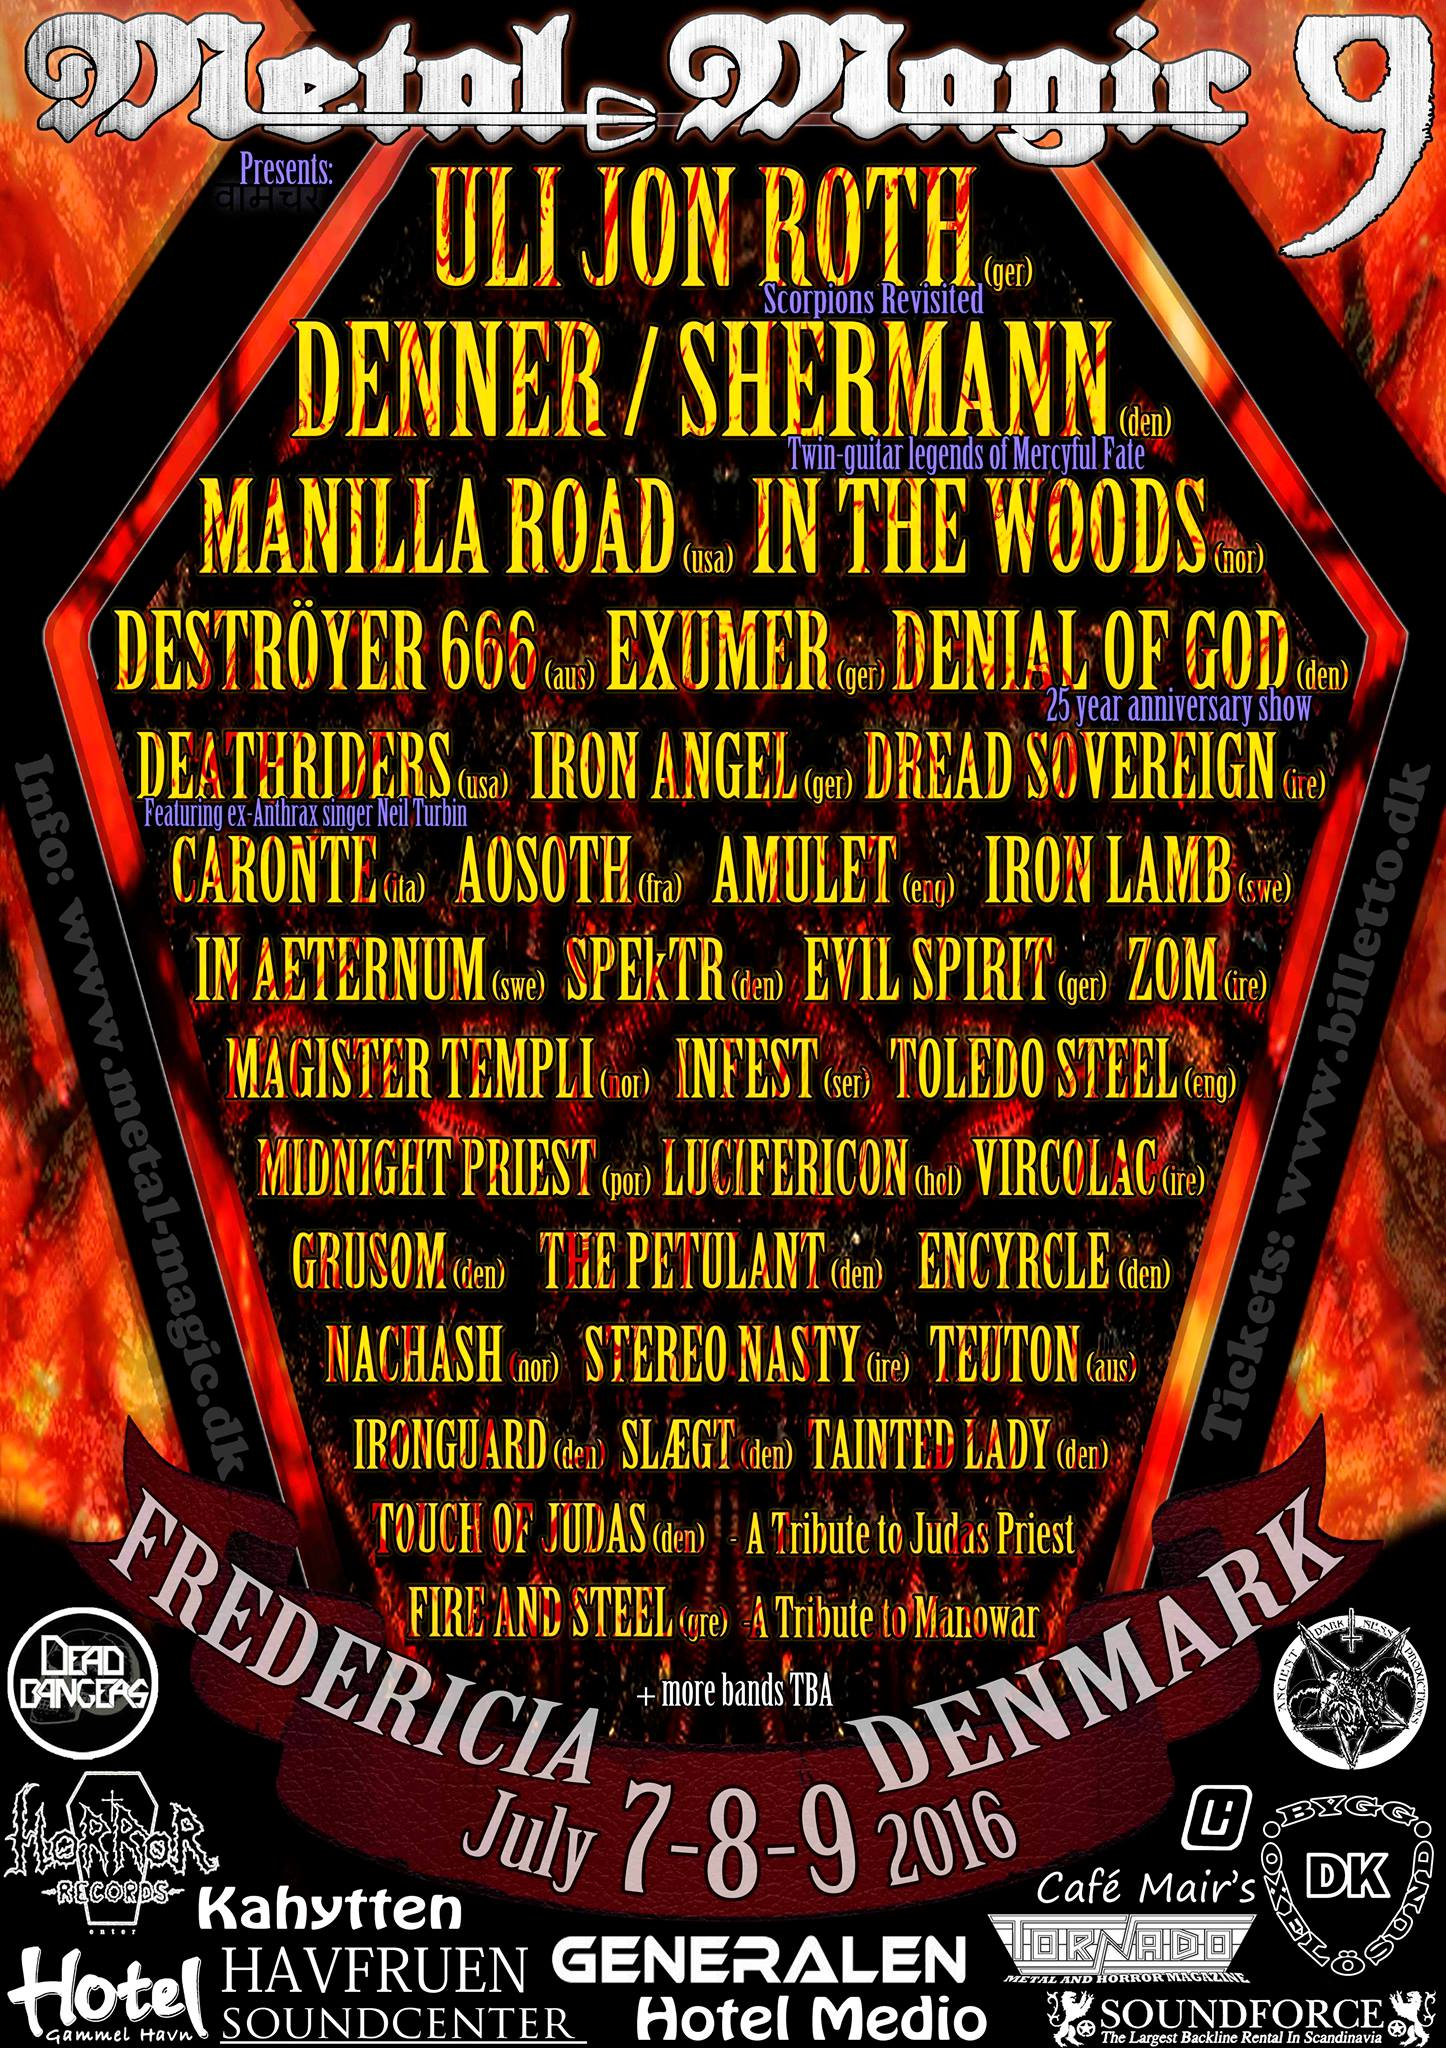 DeathRiders Metal Magic Festival Fredericia, Denmark 7/8/2016